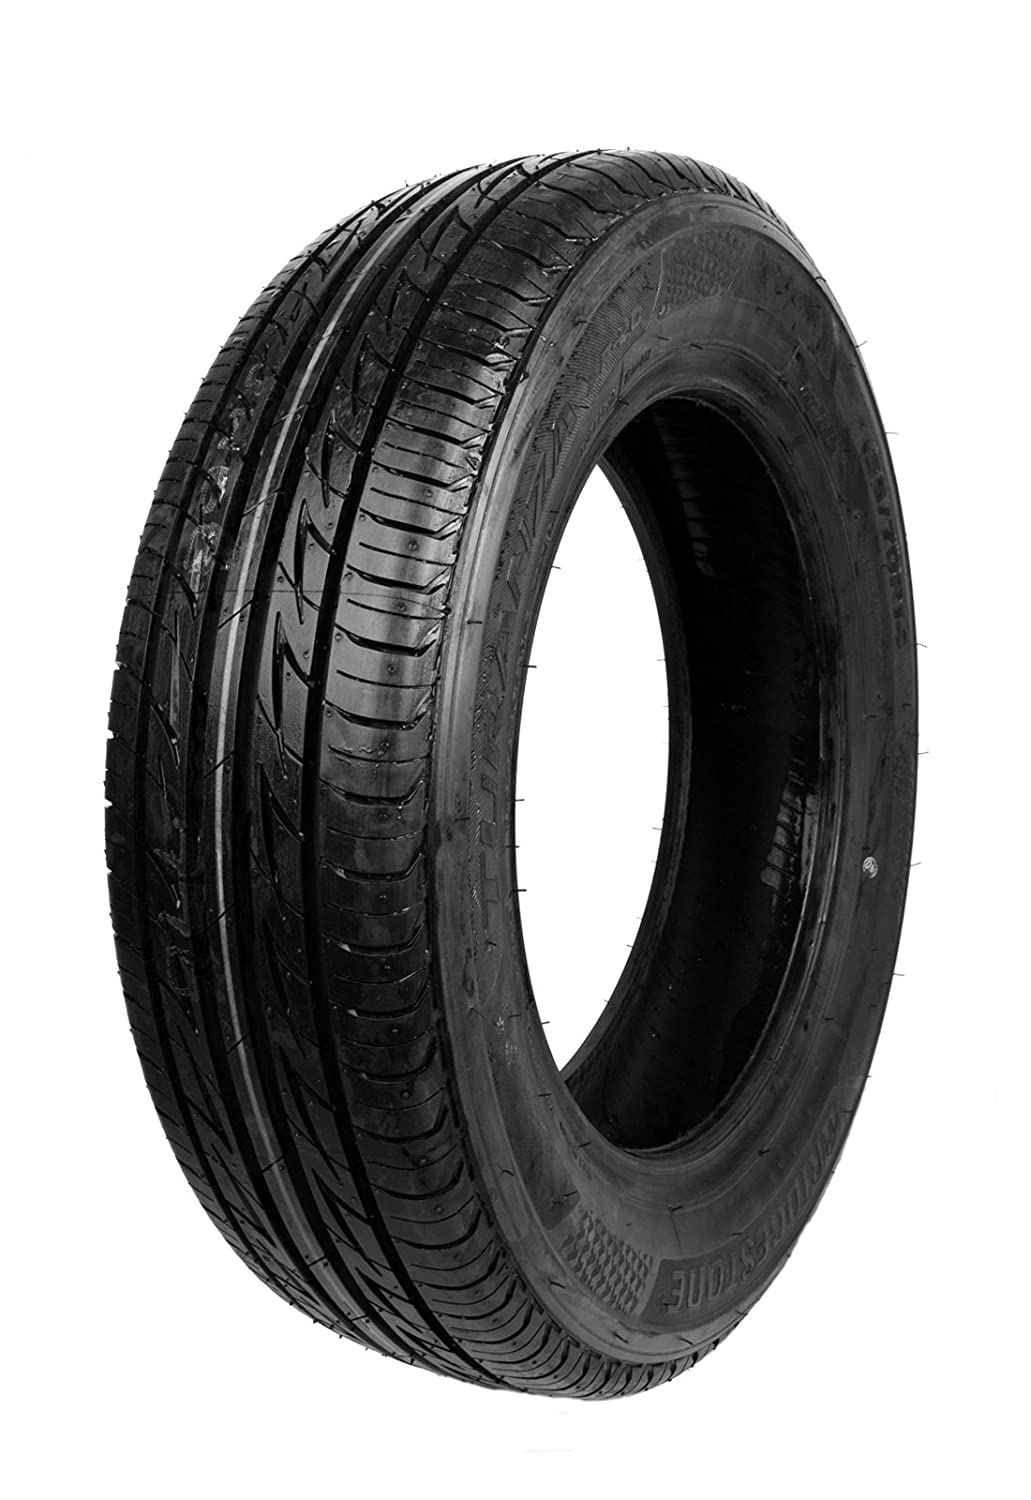 Bridgestone B290 Tl 155 70 R14 77t Tubeless Car Tyre For Chevrolet